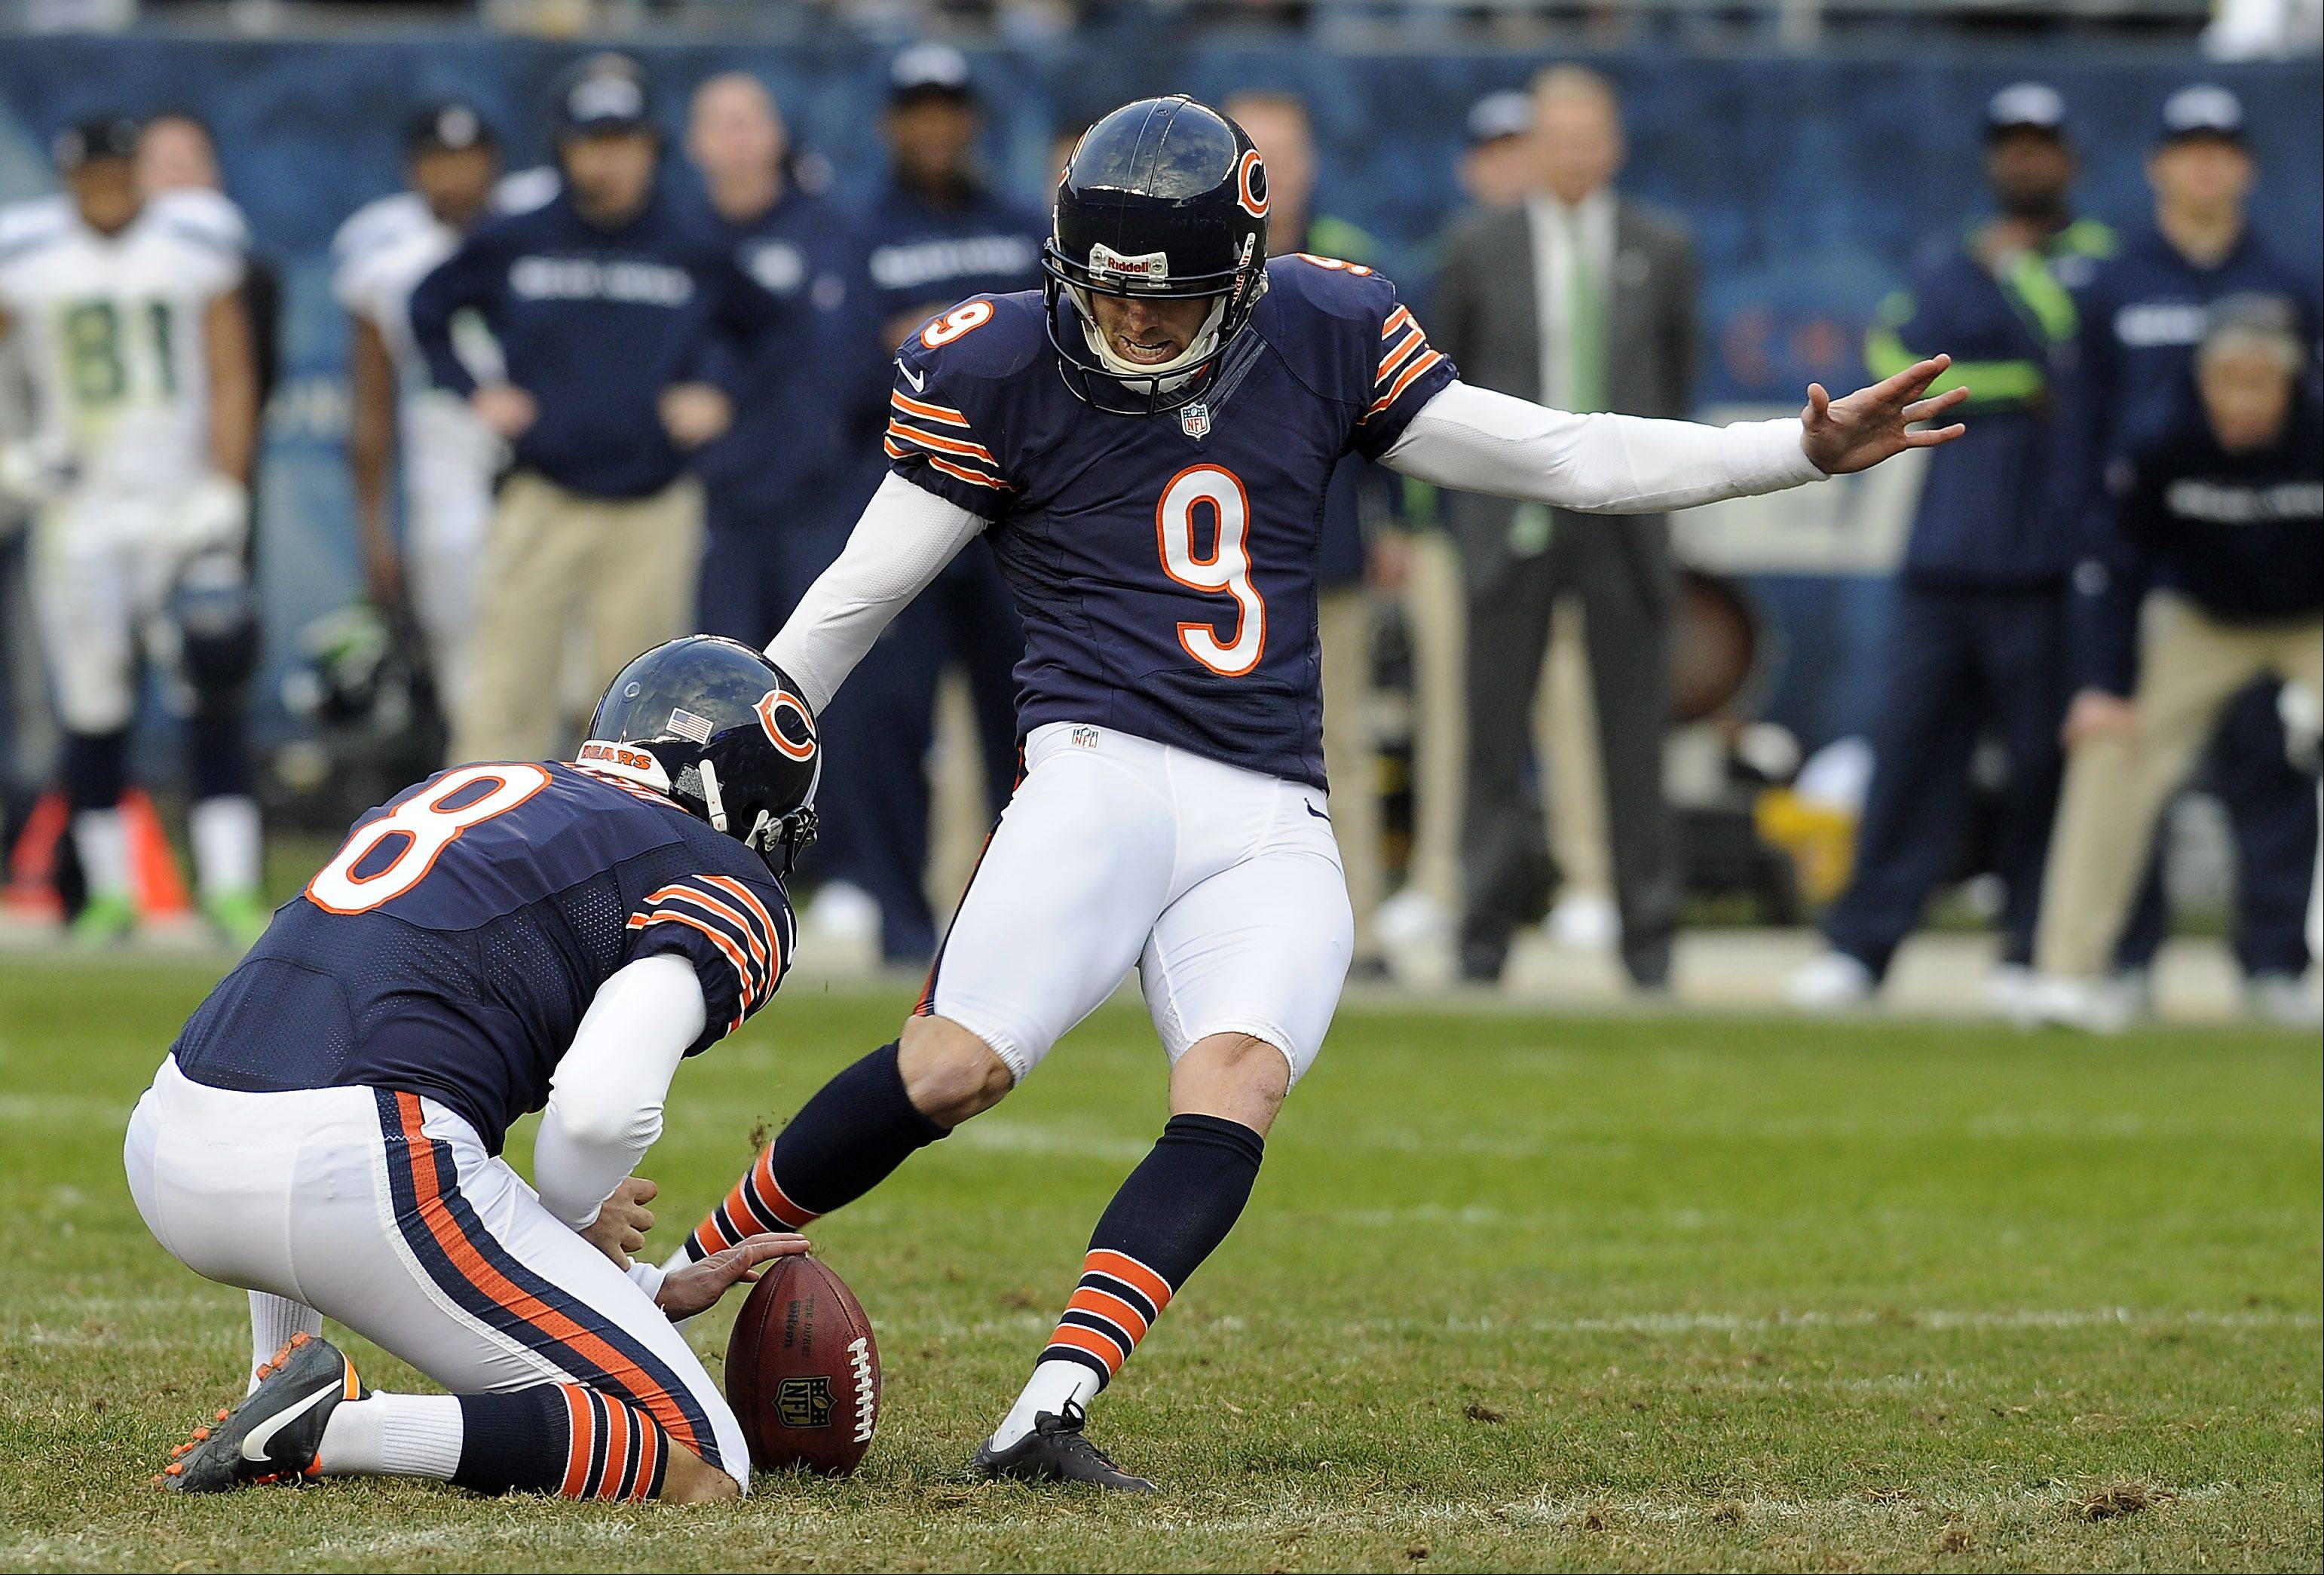 Bears kicker Robbie Gould will make $2.425 million this season plus a $500,000 roster bonus.